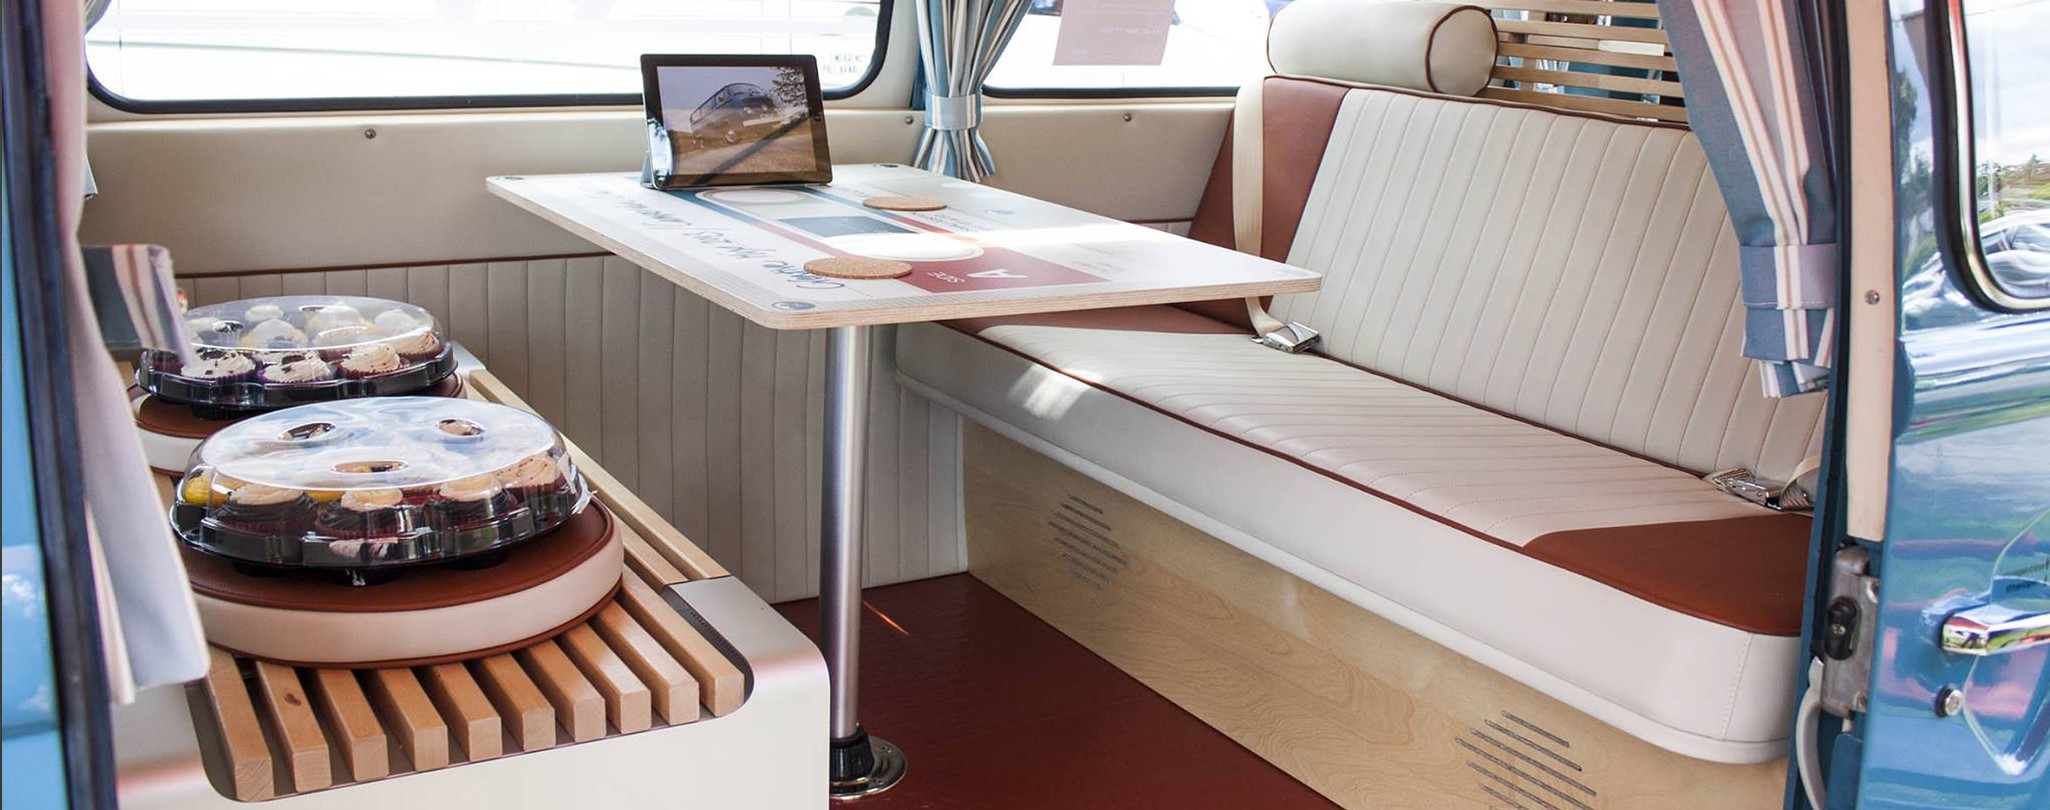 Simple yet stylish campervan table designs